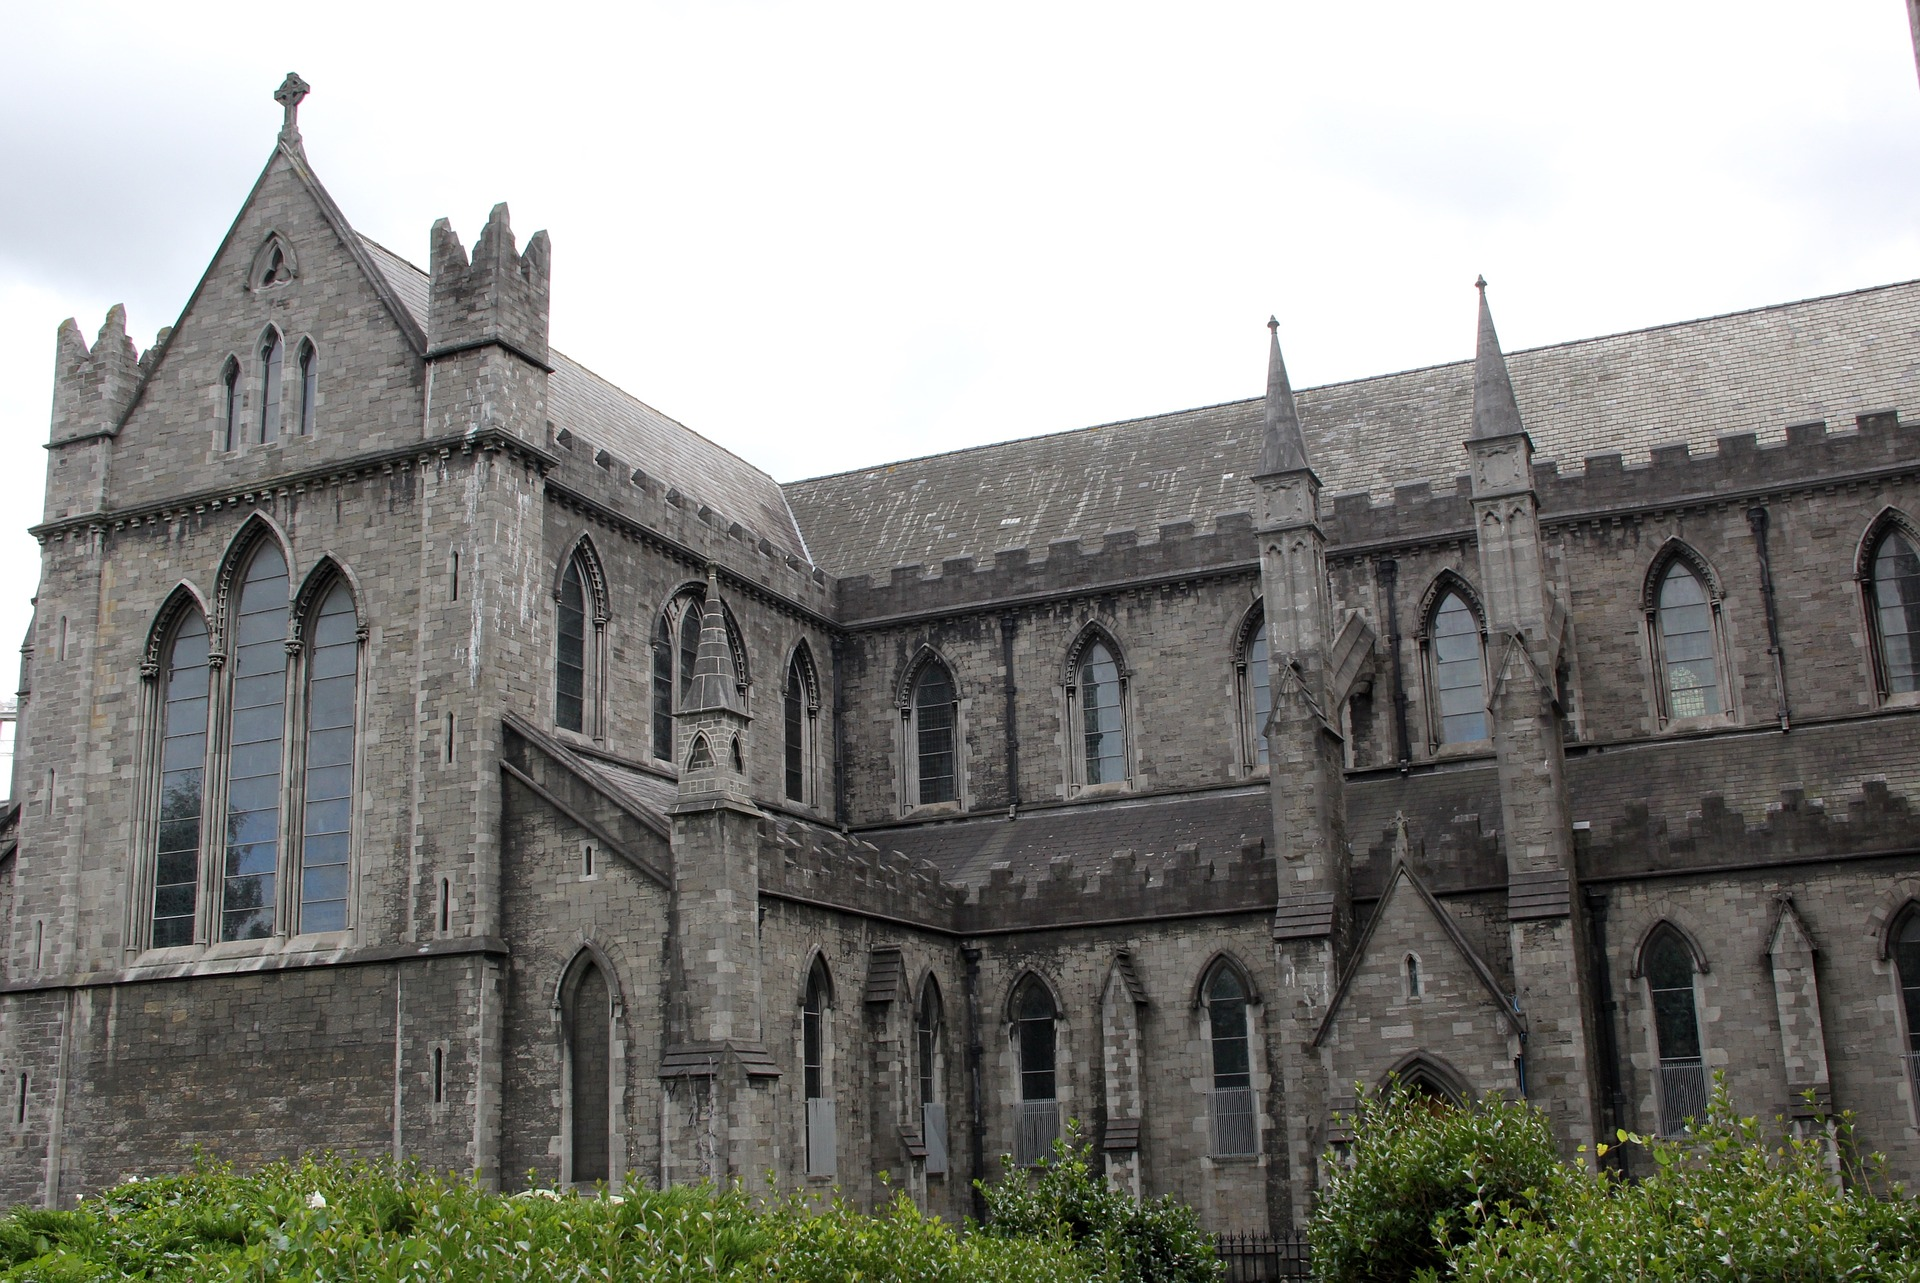 When in Dublin for 3 days visit Christchurch Cathedral